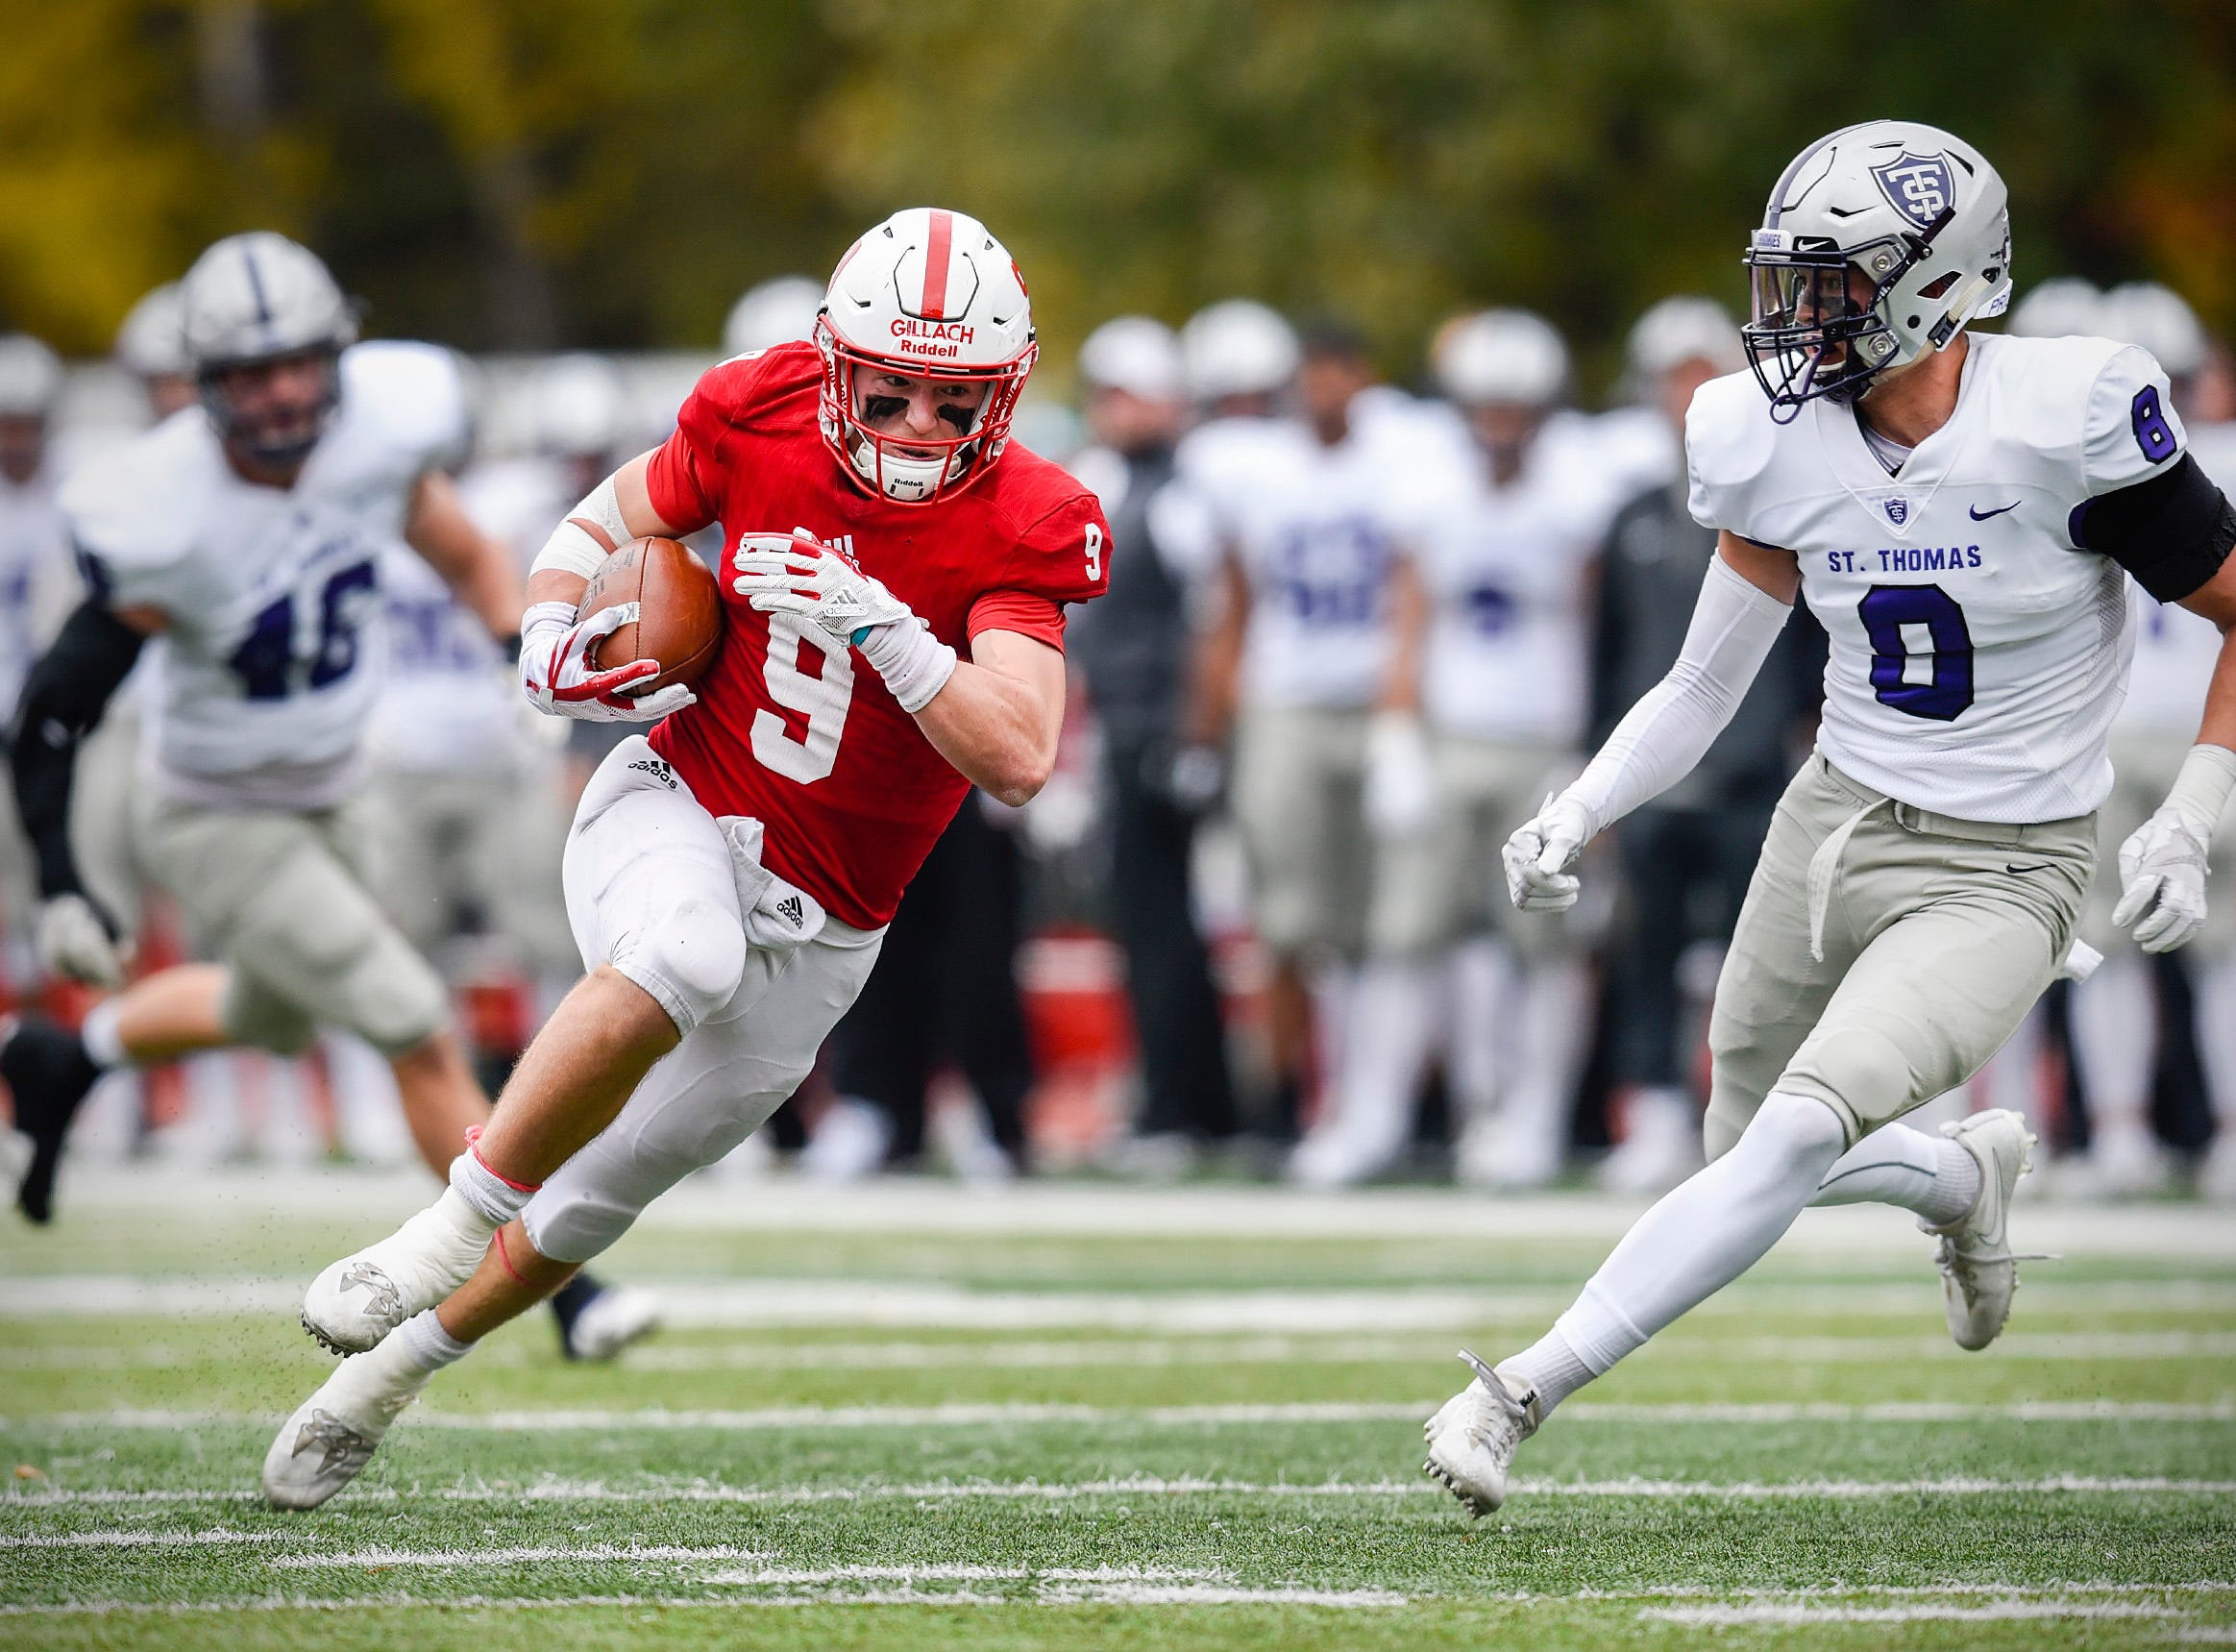 St. John's wide receiver Will Gillach gains yardage against the St. Thomas defense  during the first half Saturday, Oct. 13, in Collegeville.